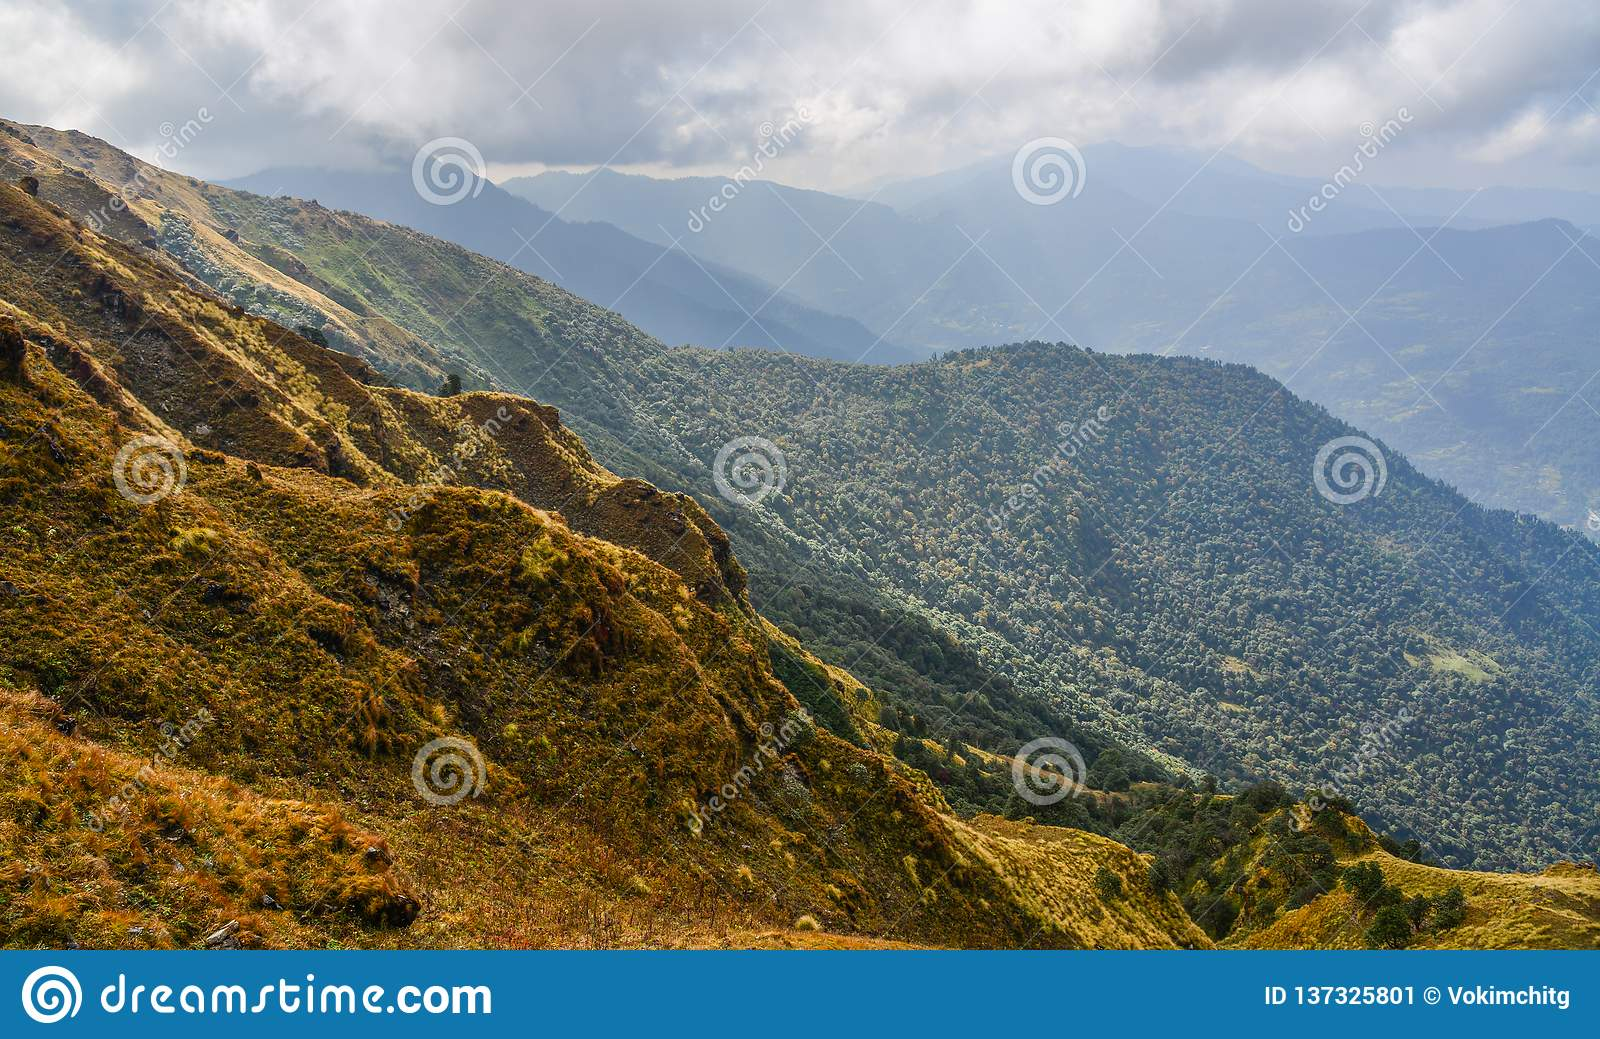 Scenery view of Poon Hill, Nepal